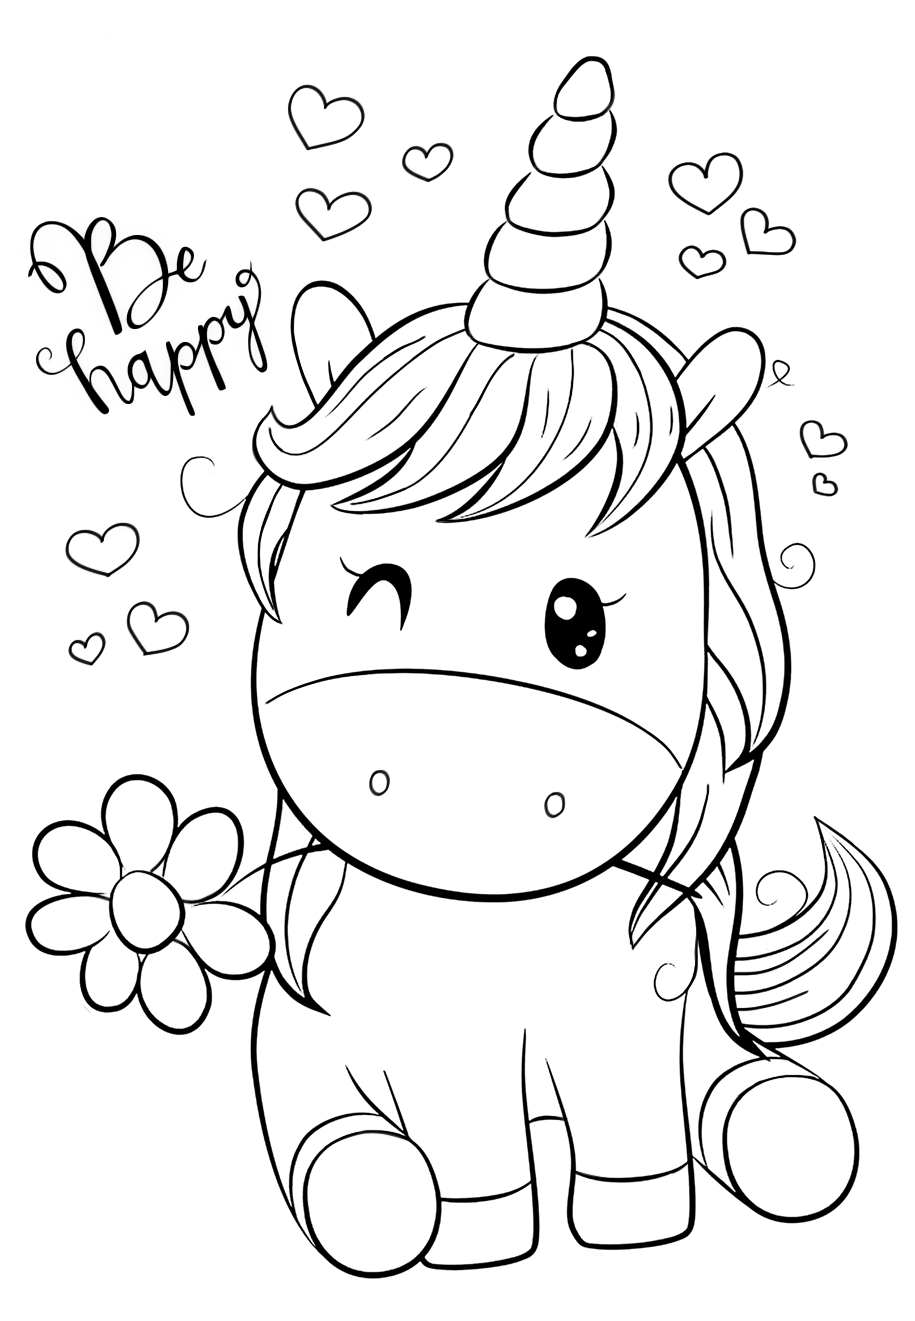 unicorn printables fairy unicorn coloring pages printable 101 coloring printables unicorn